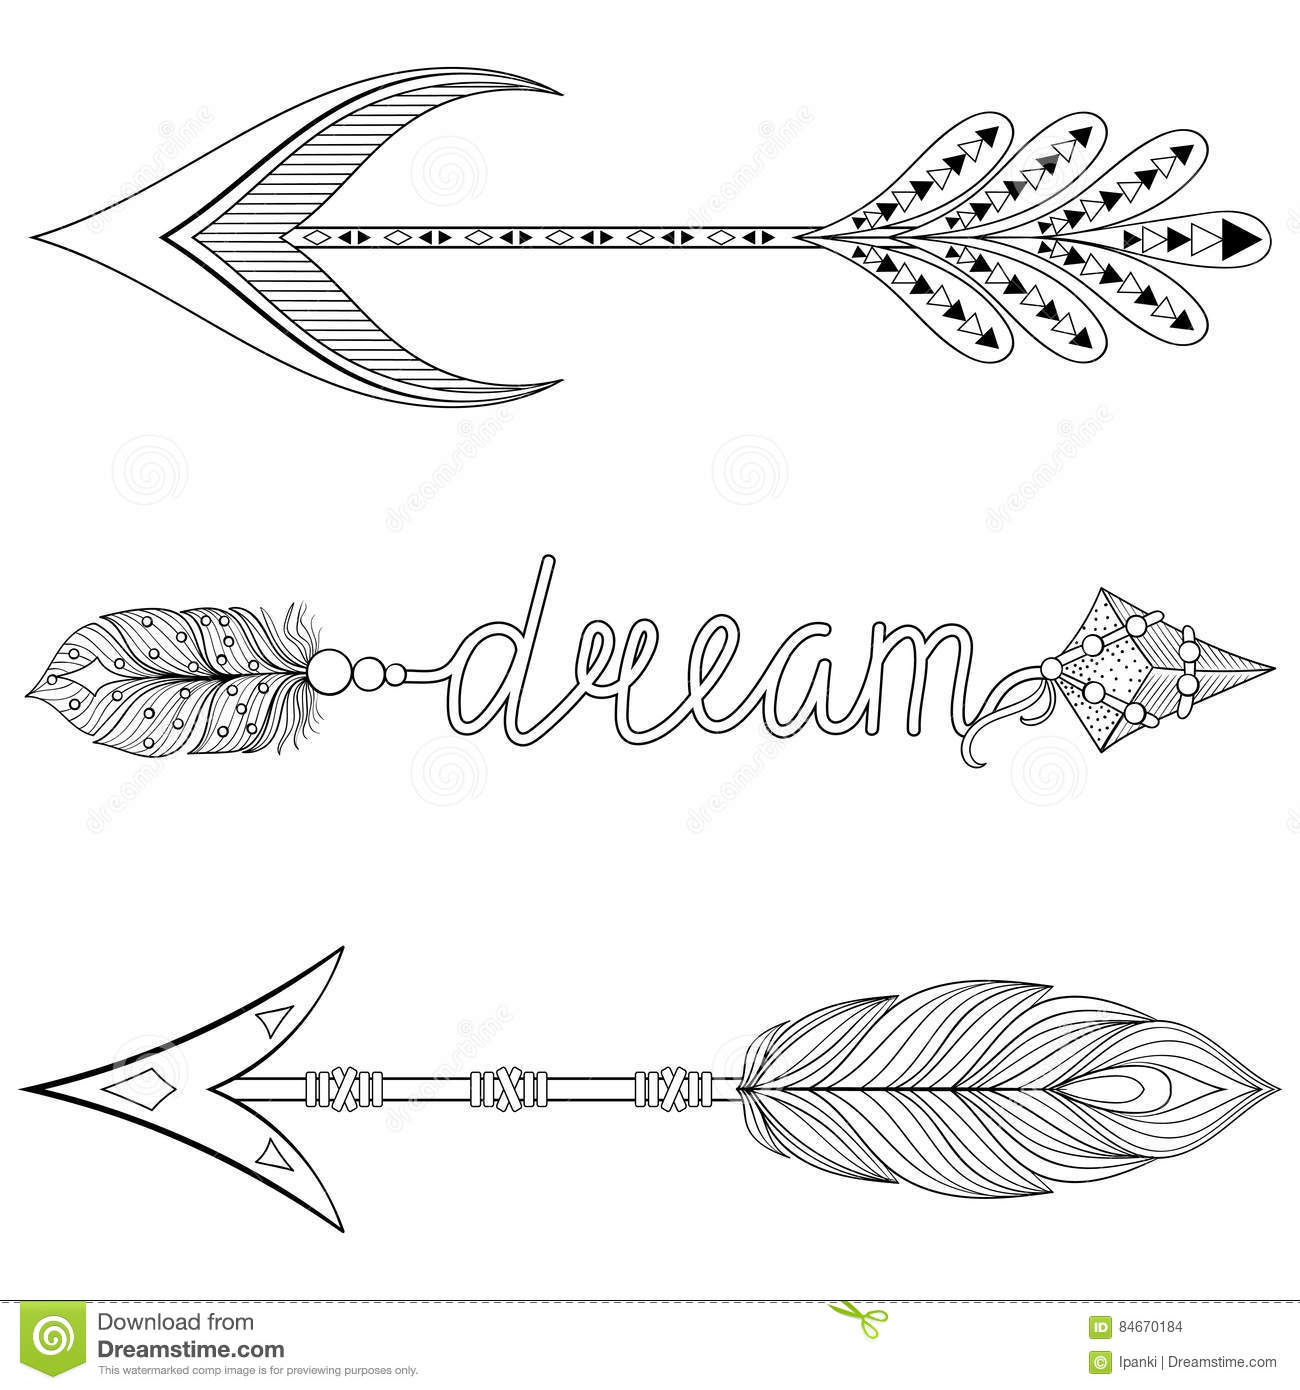 arrow coloring pages Bohemian Dream Arrows Set With Feathers For Adult Coloring Pages  arrow coloring pages